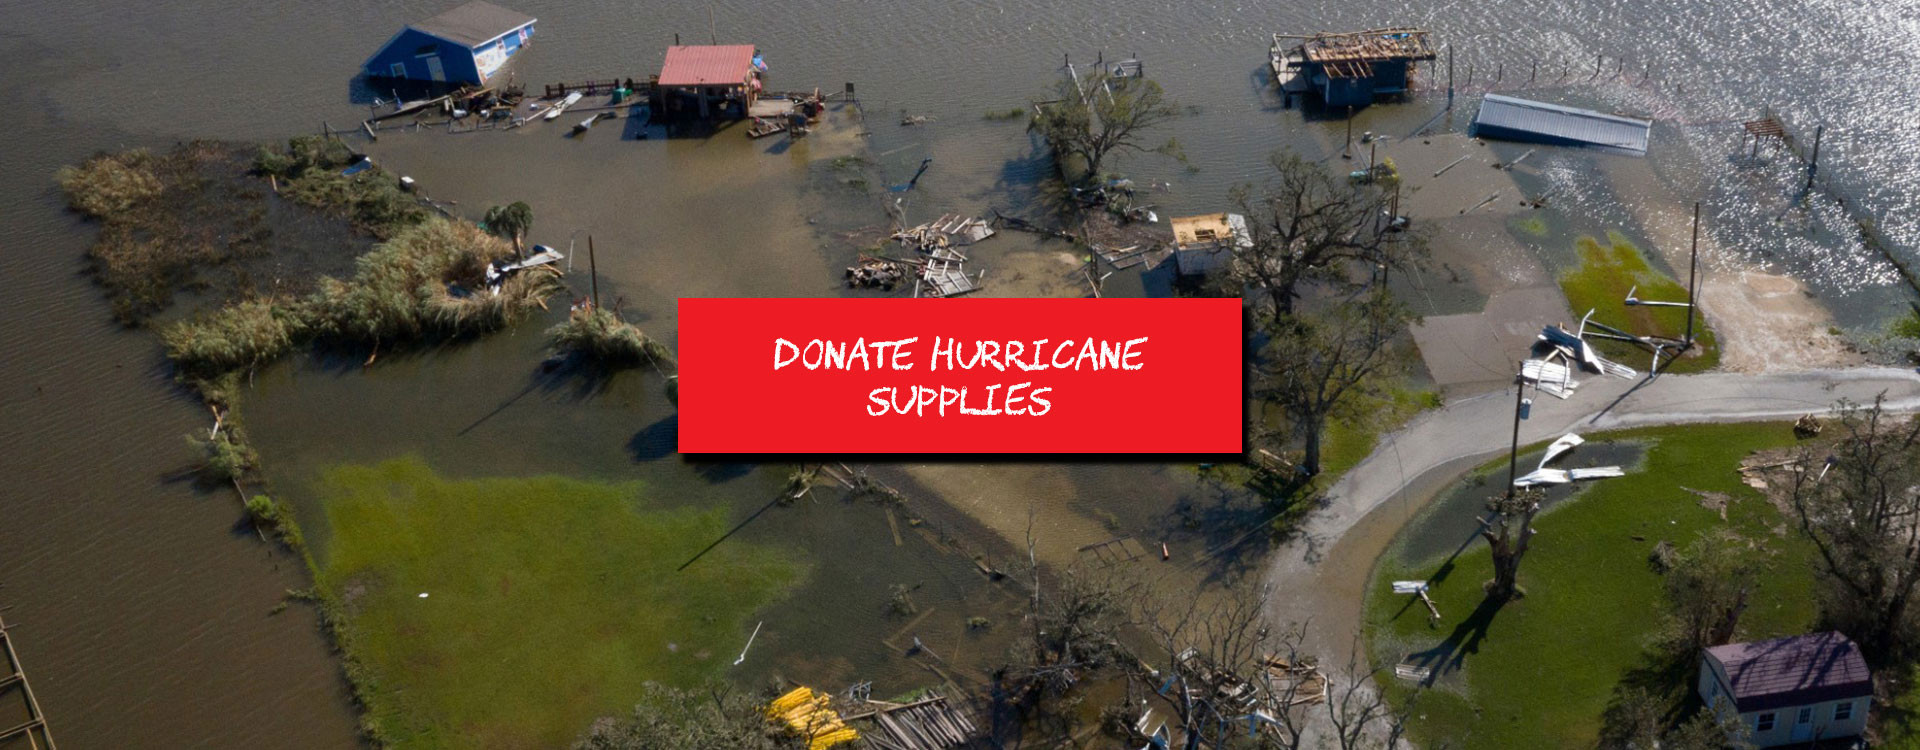 hurricane-supplies-donations.jpg